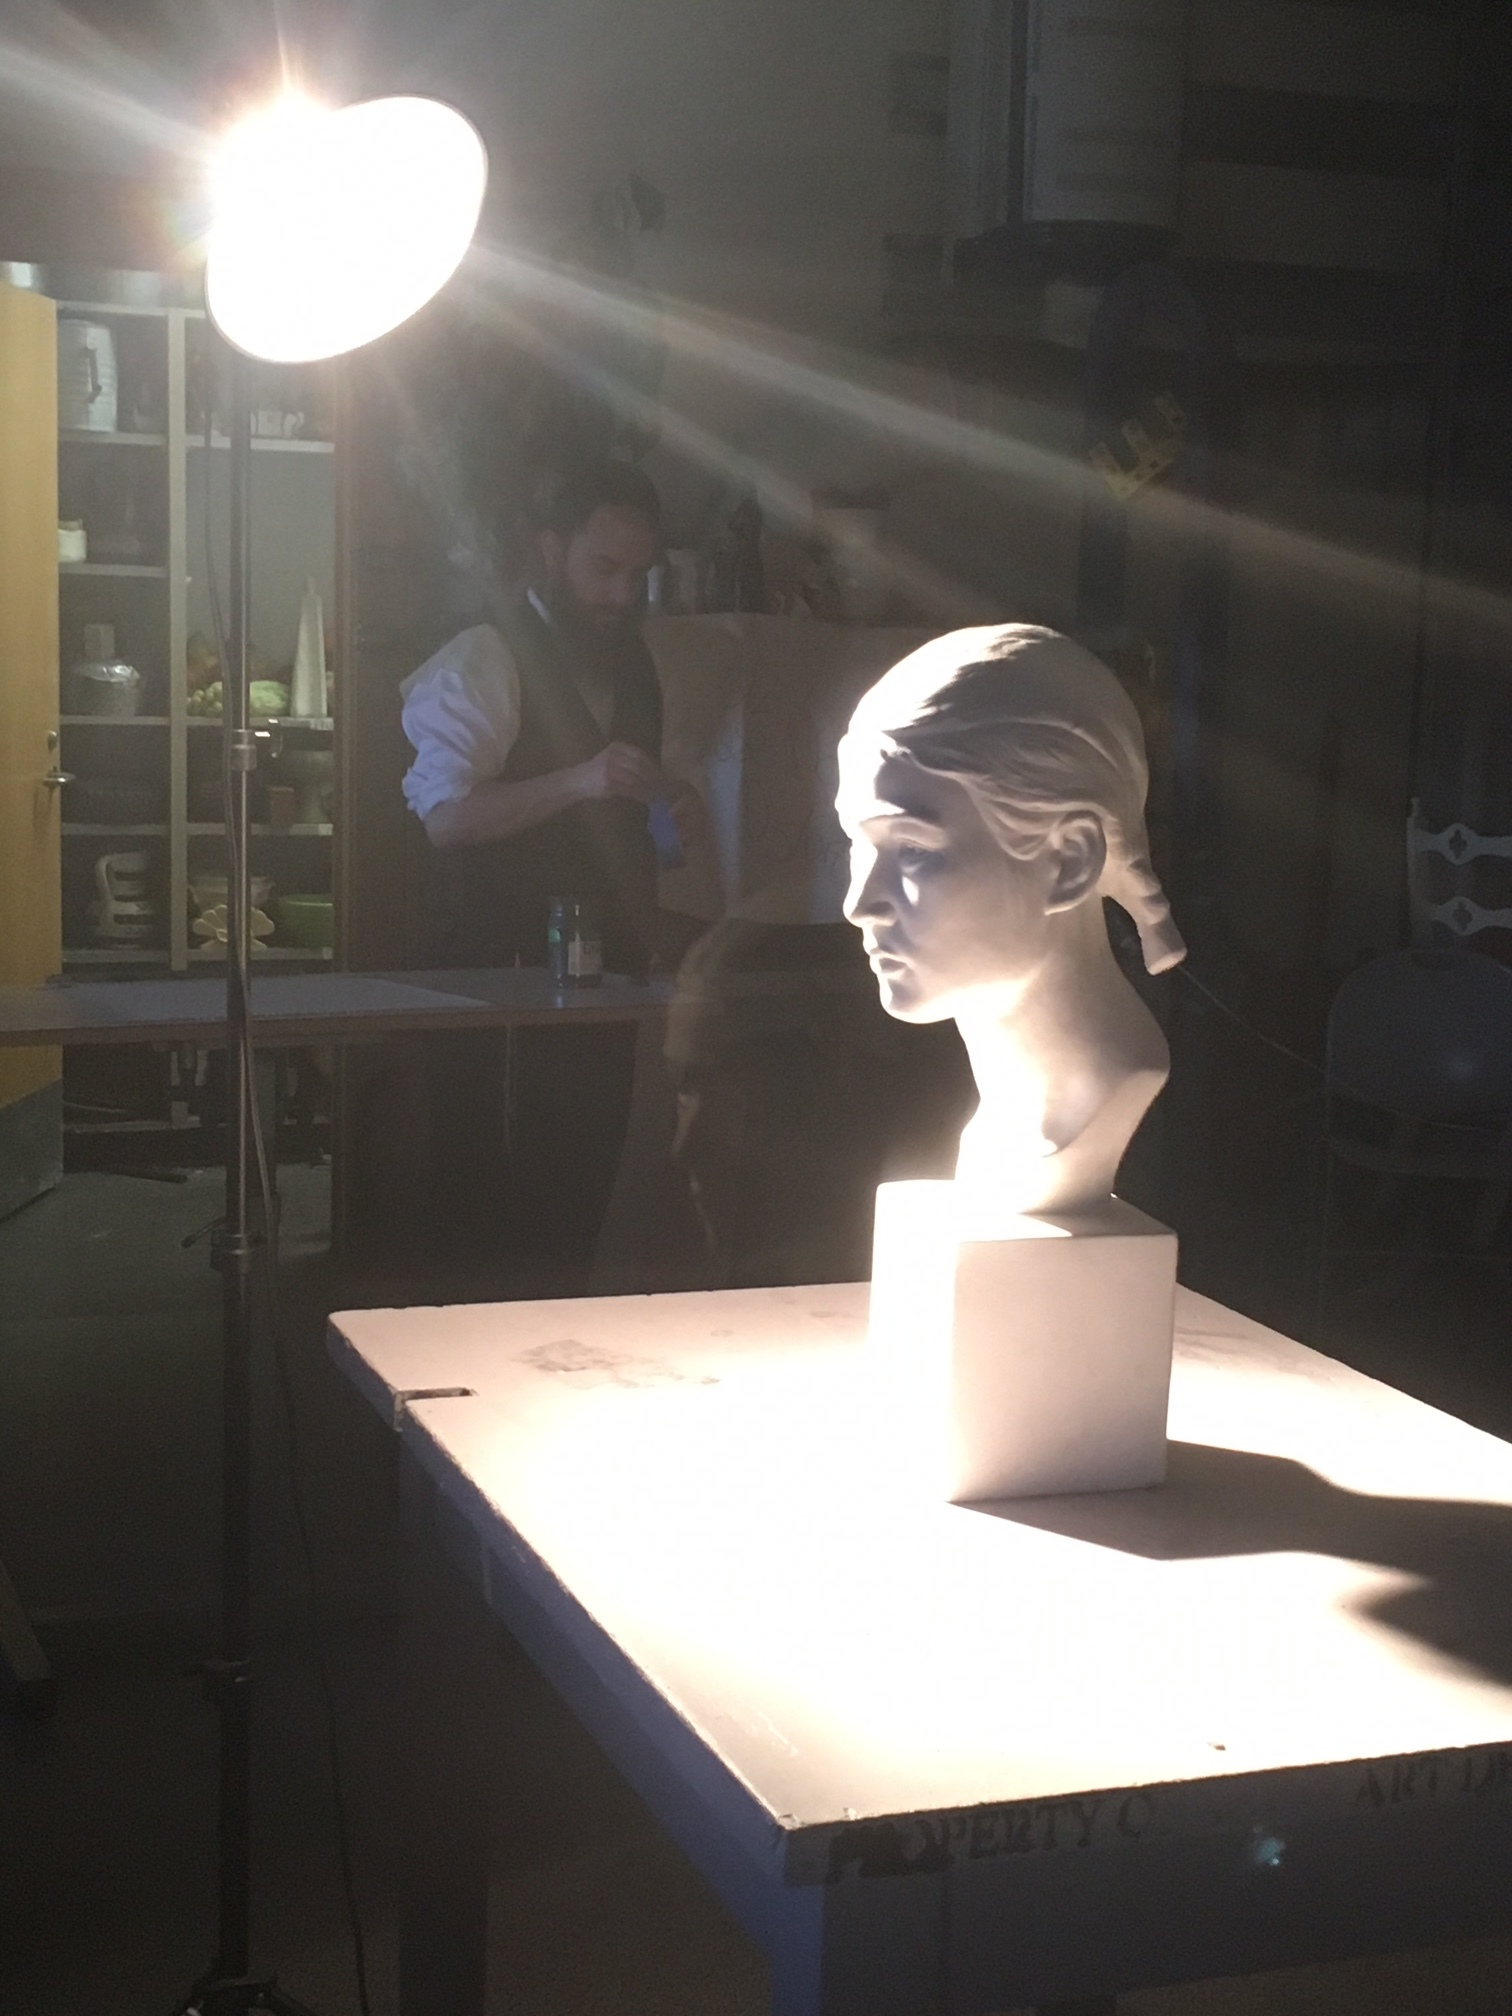 Drawing 1 & 2 students can choose to practice drawing facial anatomy by drawing a plaster bust or a self-portrait from a mirror.